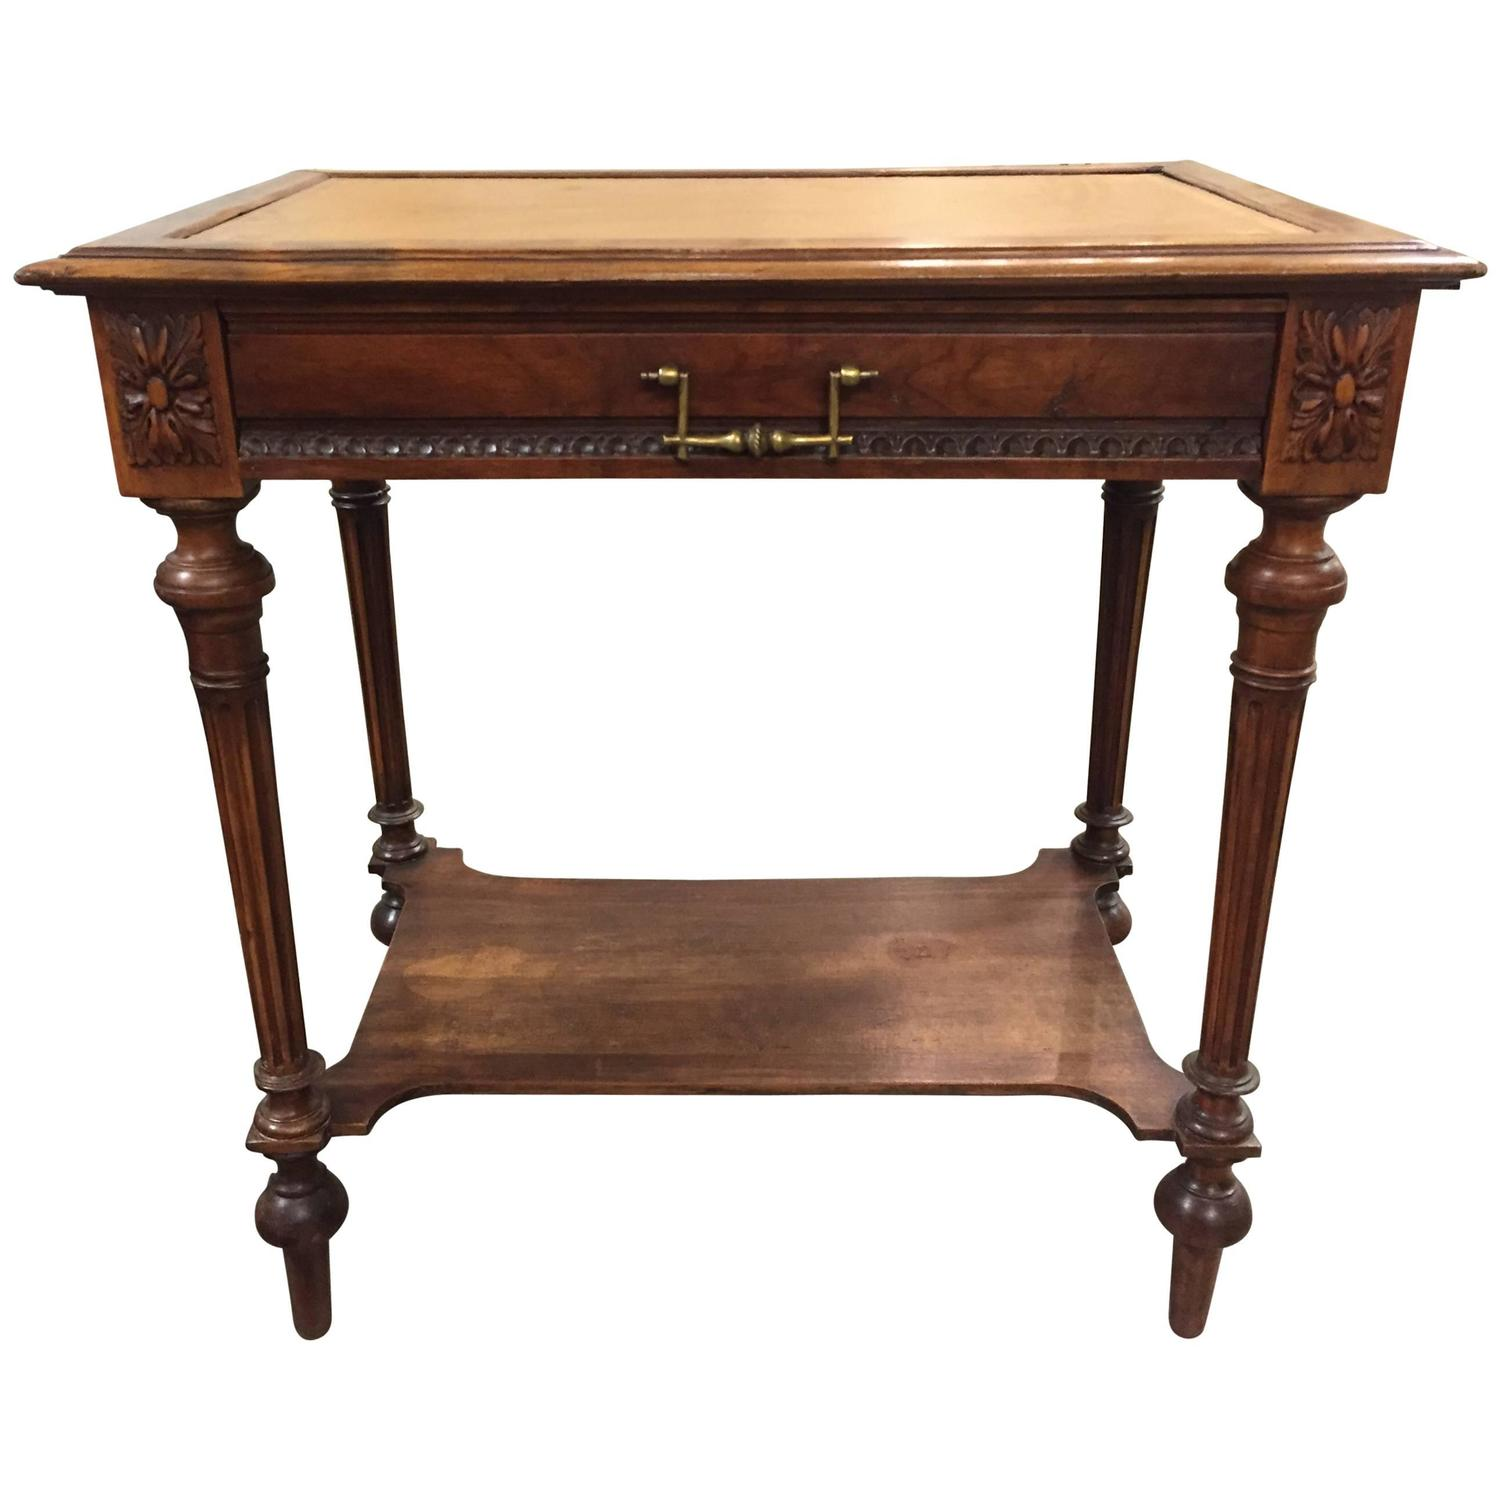 henri ii 19th century french side table or desk with tooled leather and drawer for sale at 1stdibs. Black Bedroom Furniture Sets. Home Design Ideas